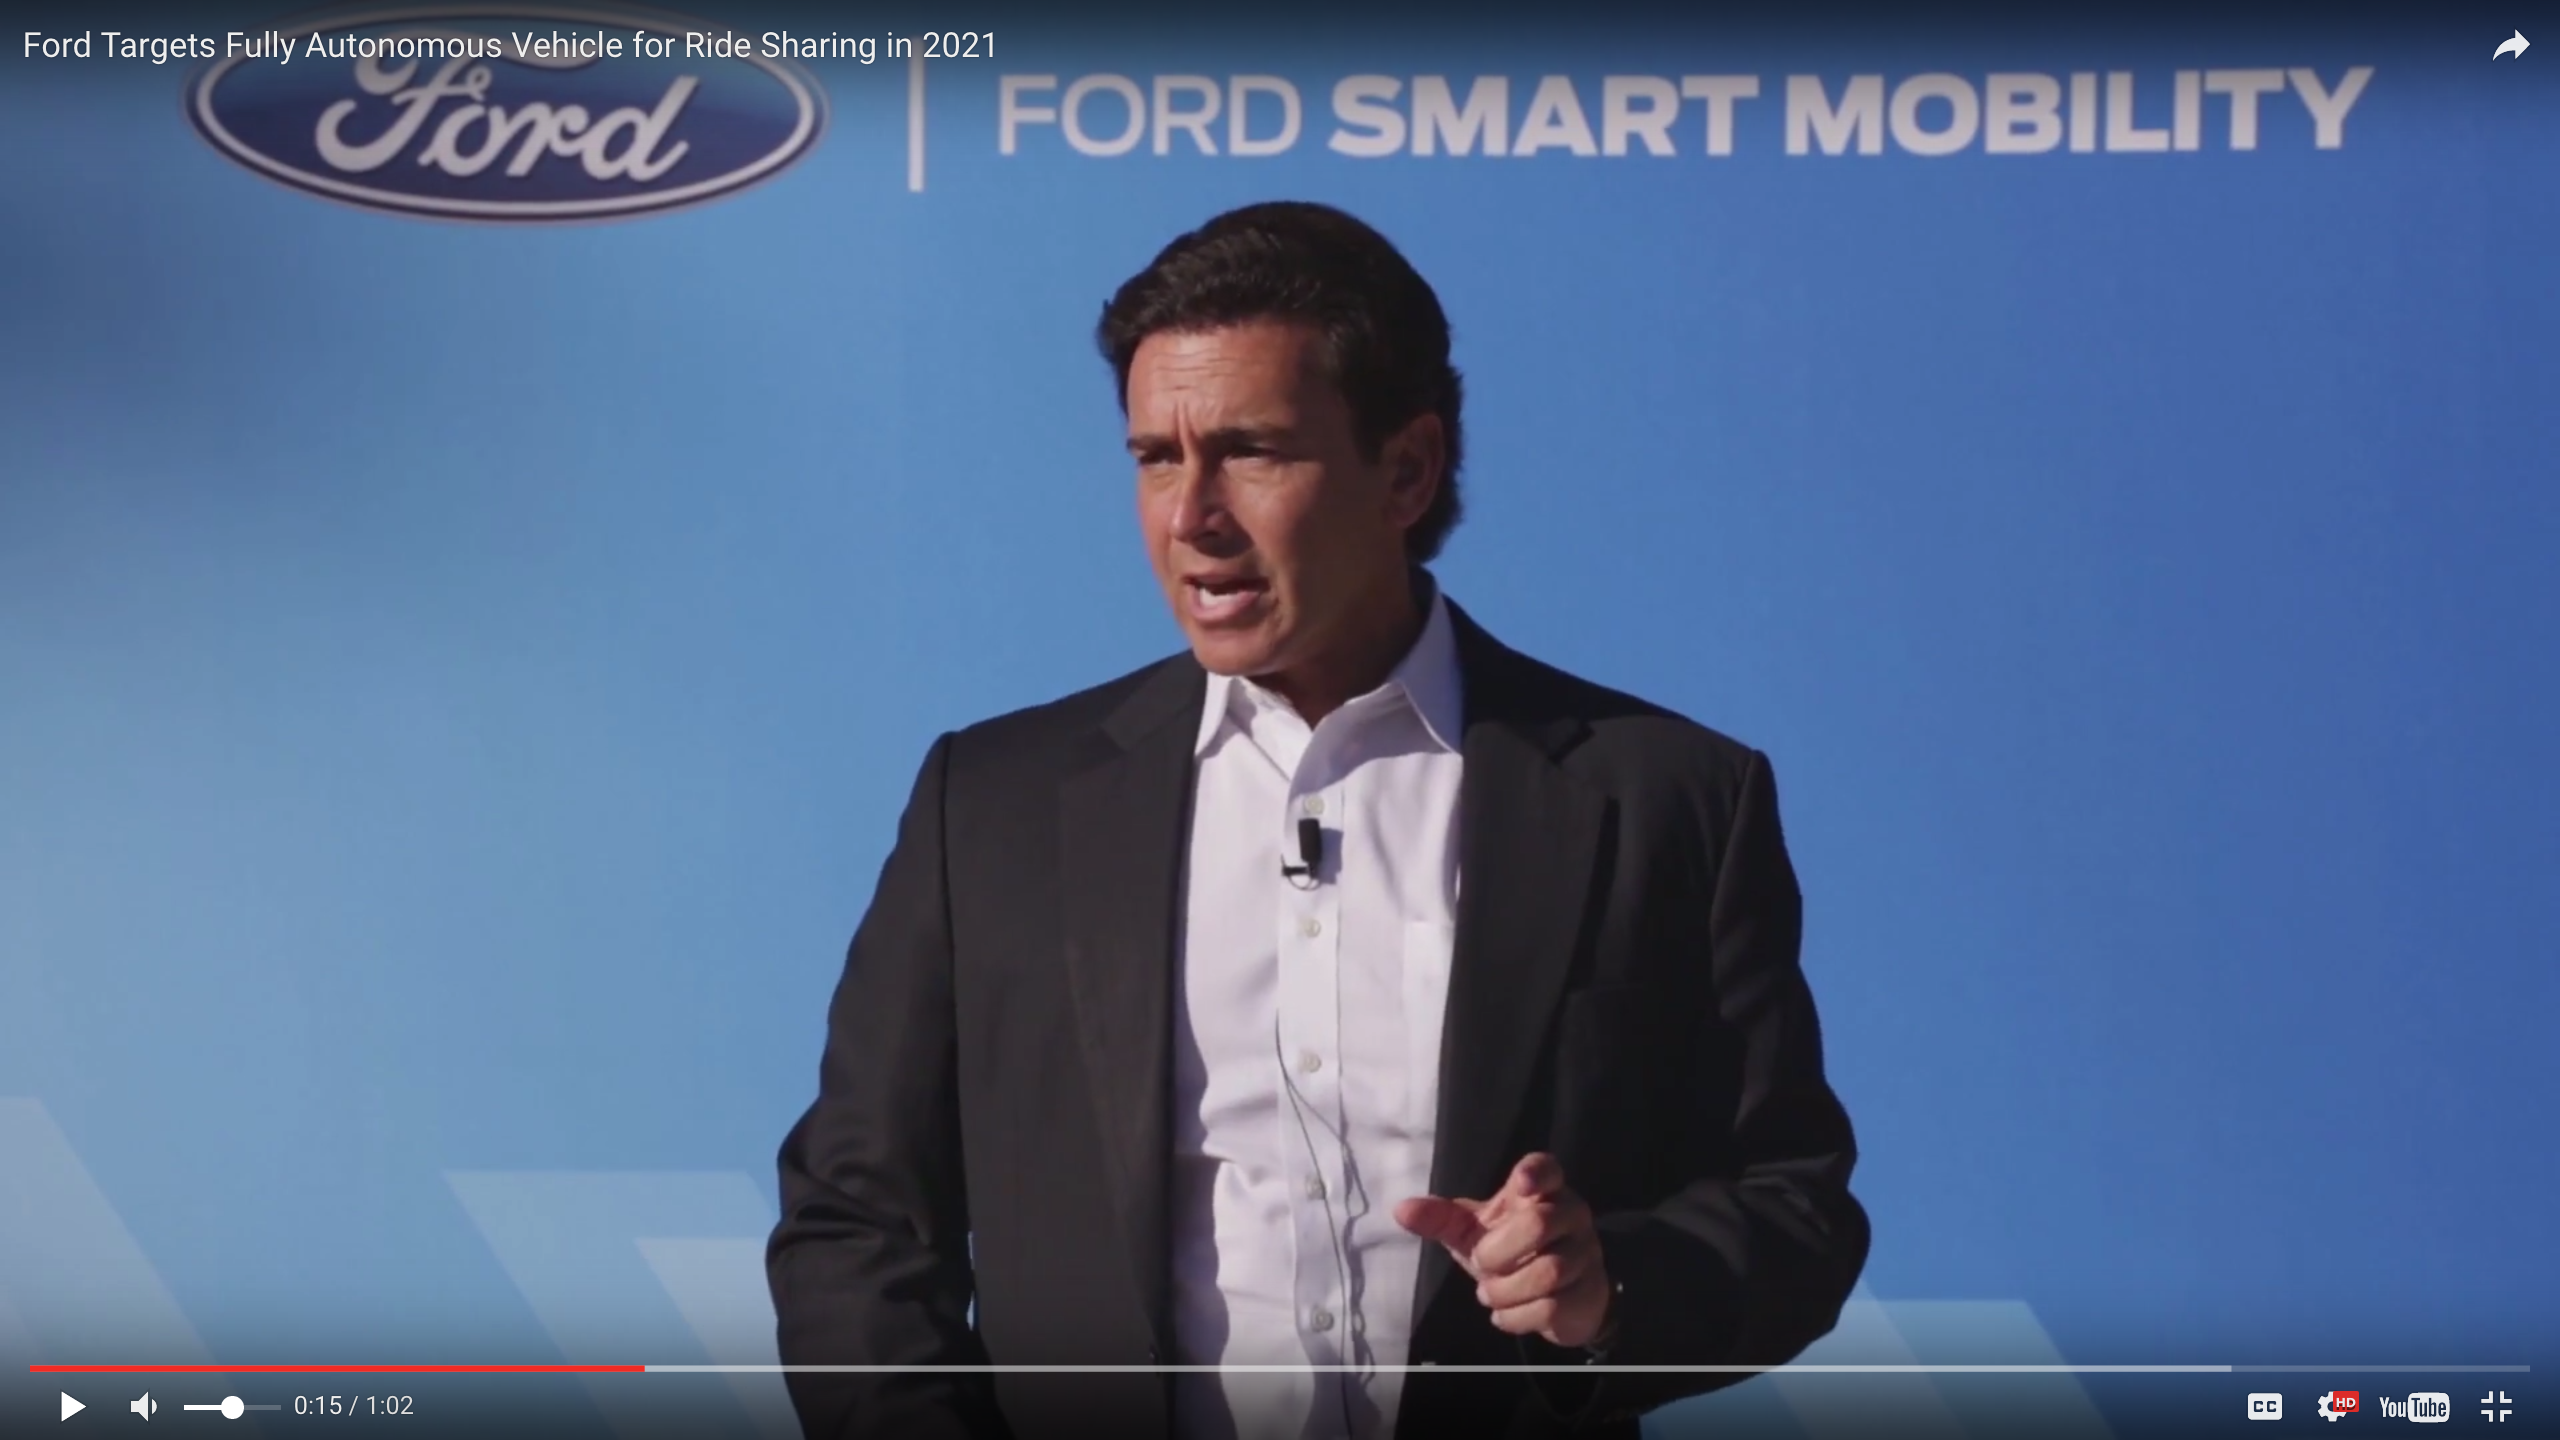 Ford Driverless Cars Coming in 2021